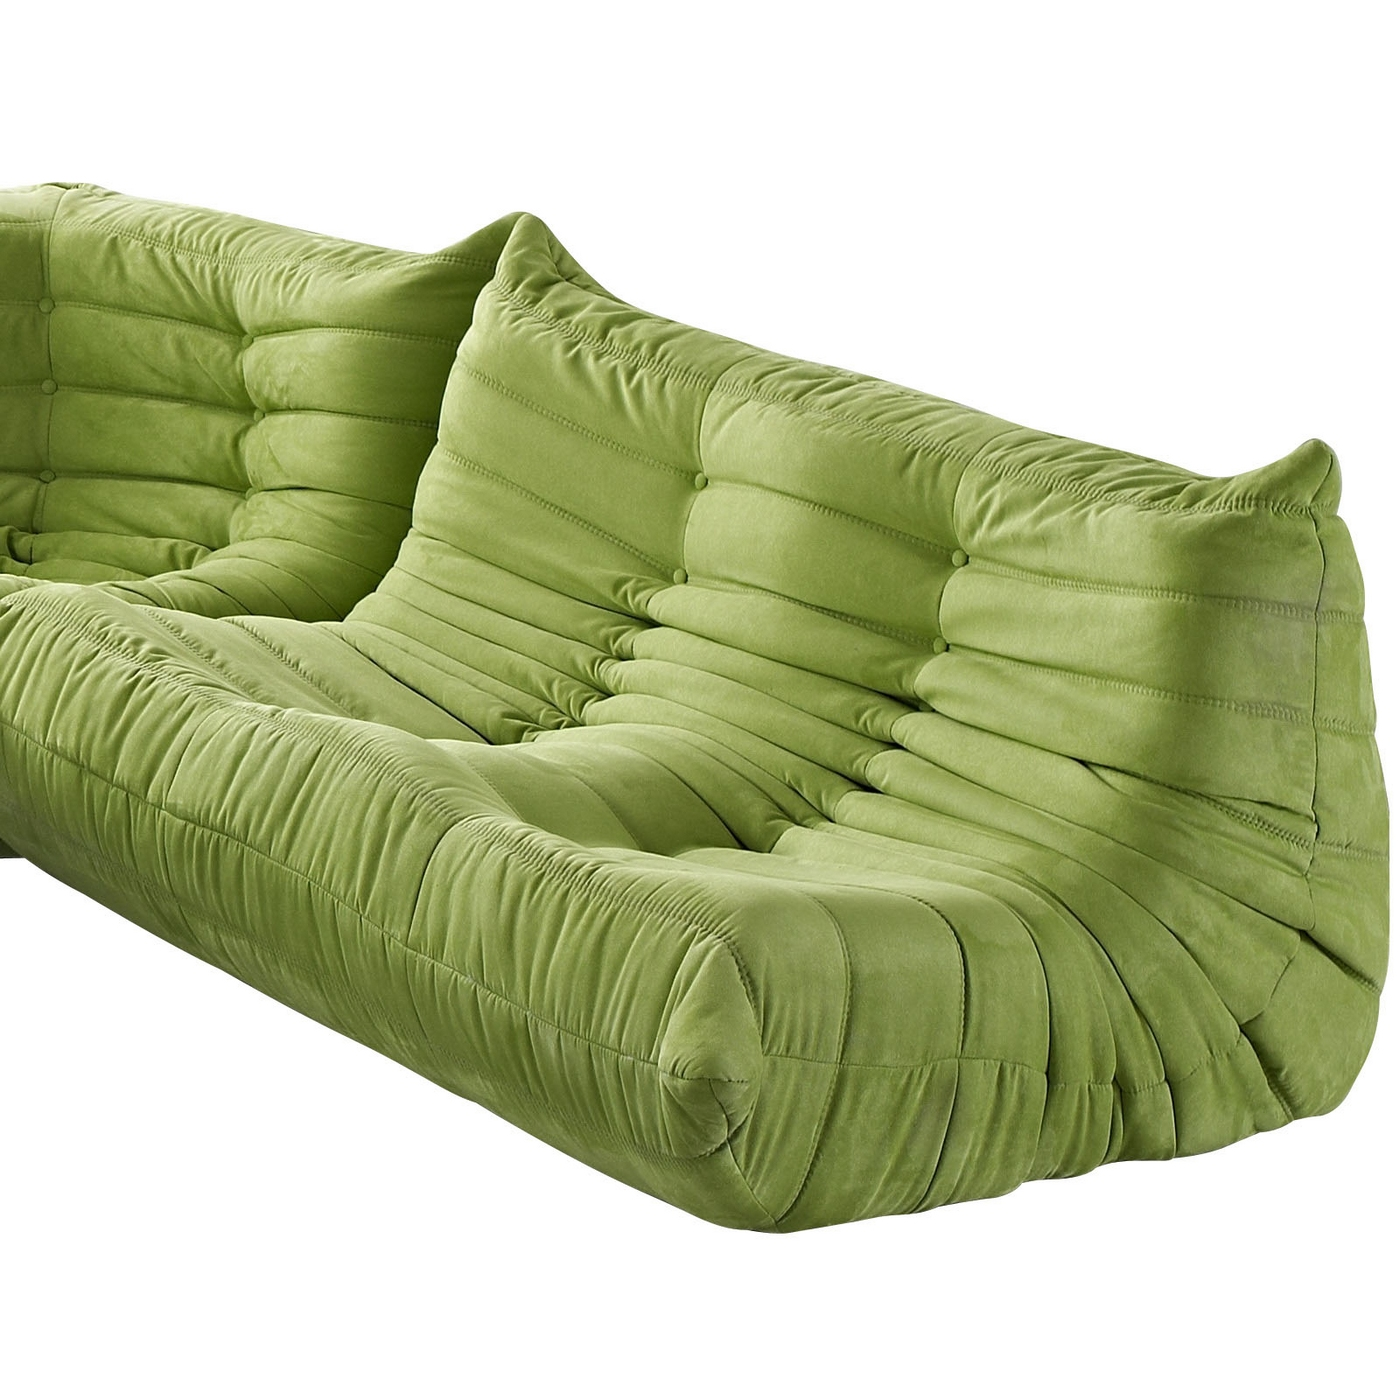 Wave Runner Contemporary Bean Bag Style Upholstered Loveseat Green